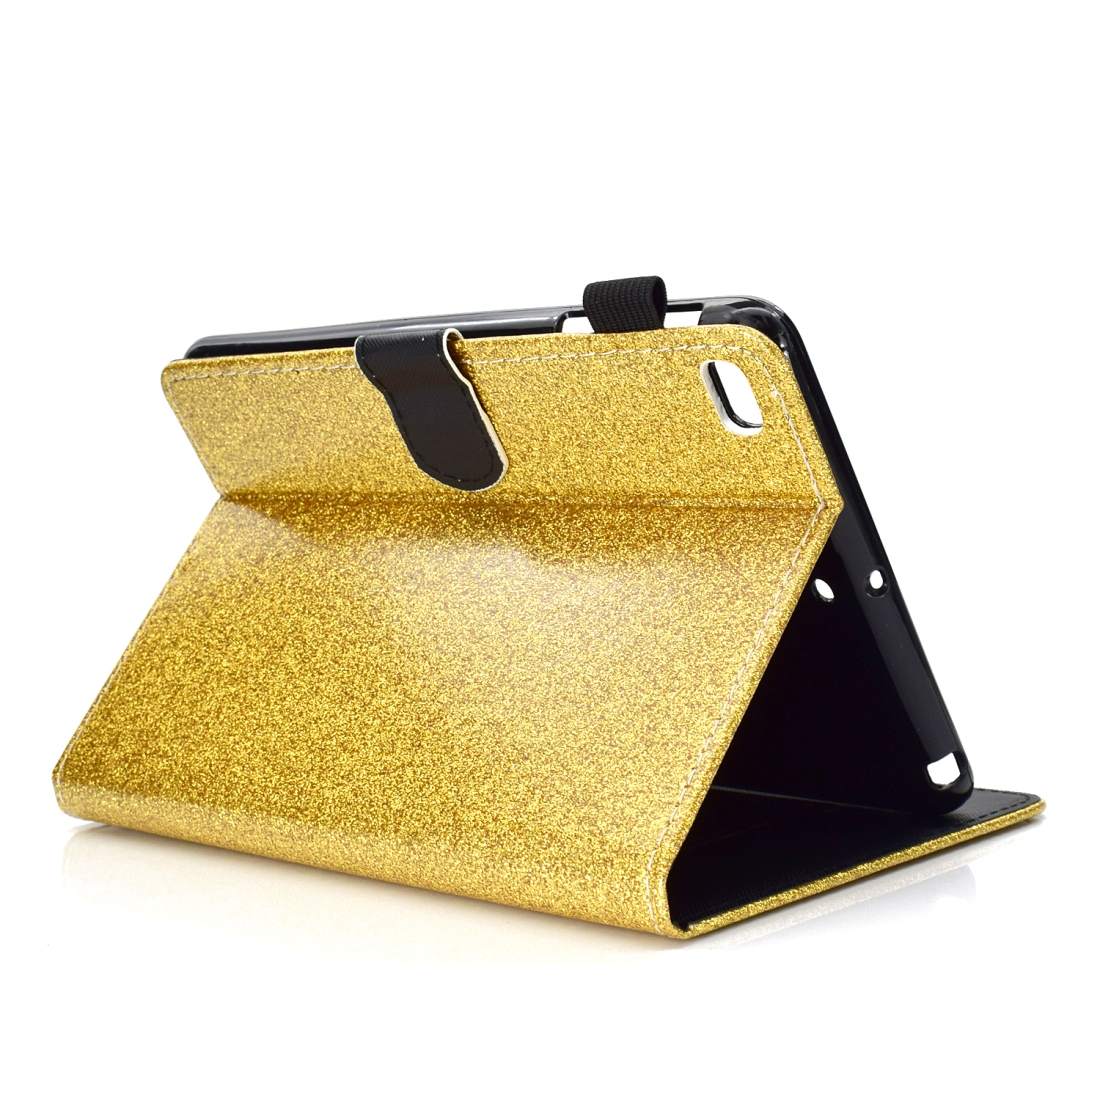 Bling Glitter Leather iPad Mini 5 Case, Also Fits iPad Mini 1,2,3,4, With Sleeve (Gold)